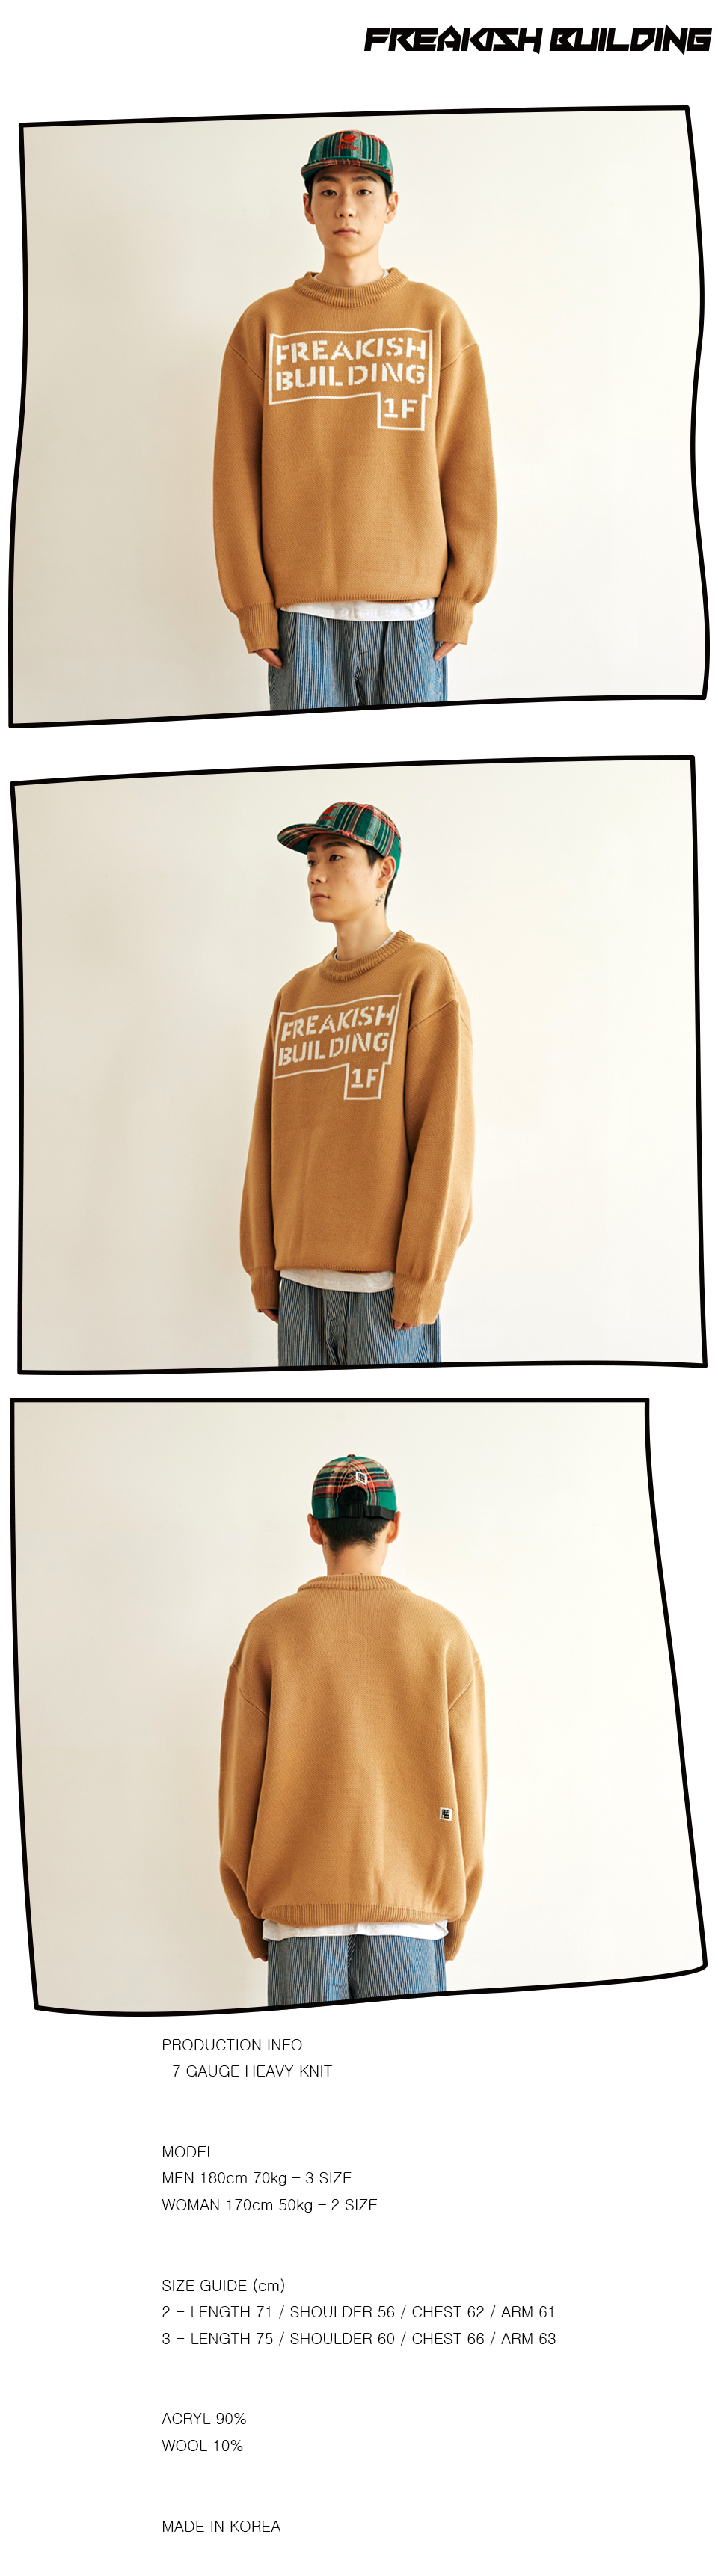 #27 STEN SWEATER (BEIGE) 02.jpg